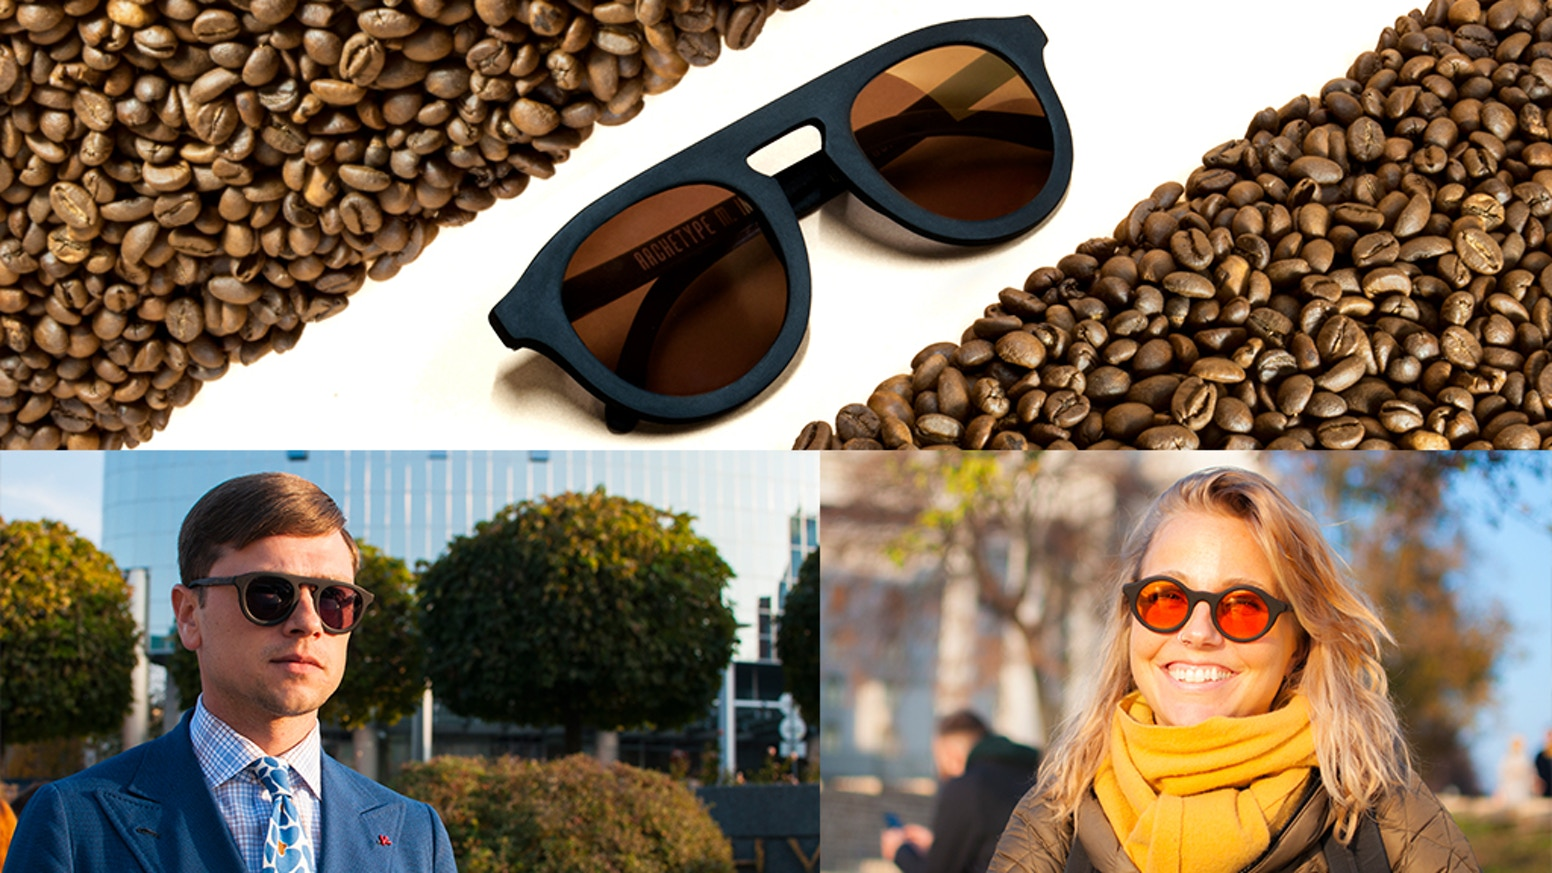 Organic sunglasses made of natural coffee grounds and flax with Polarized Lenses.